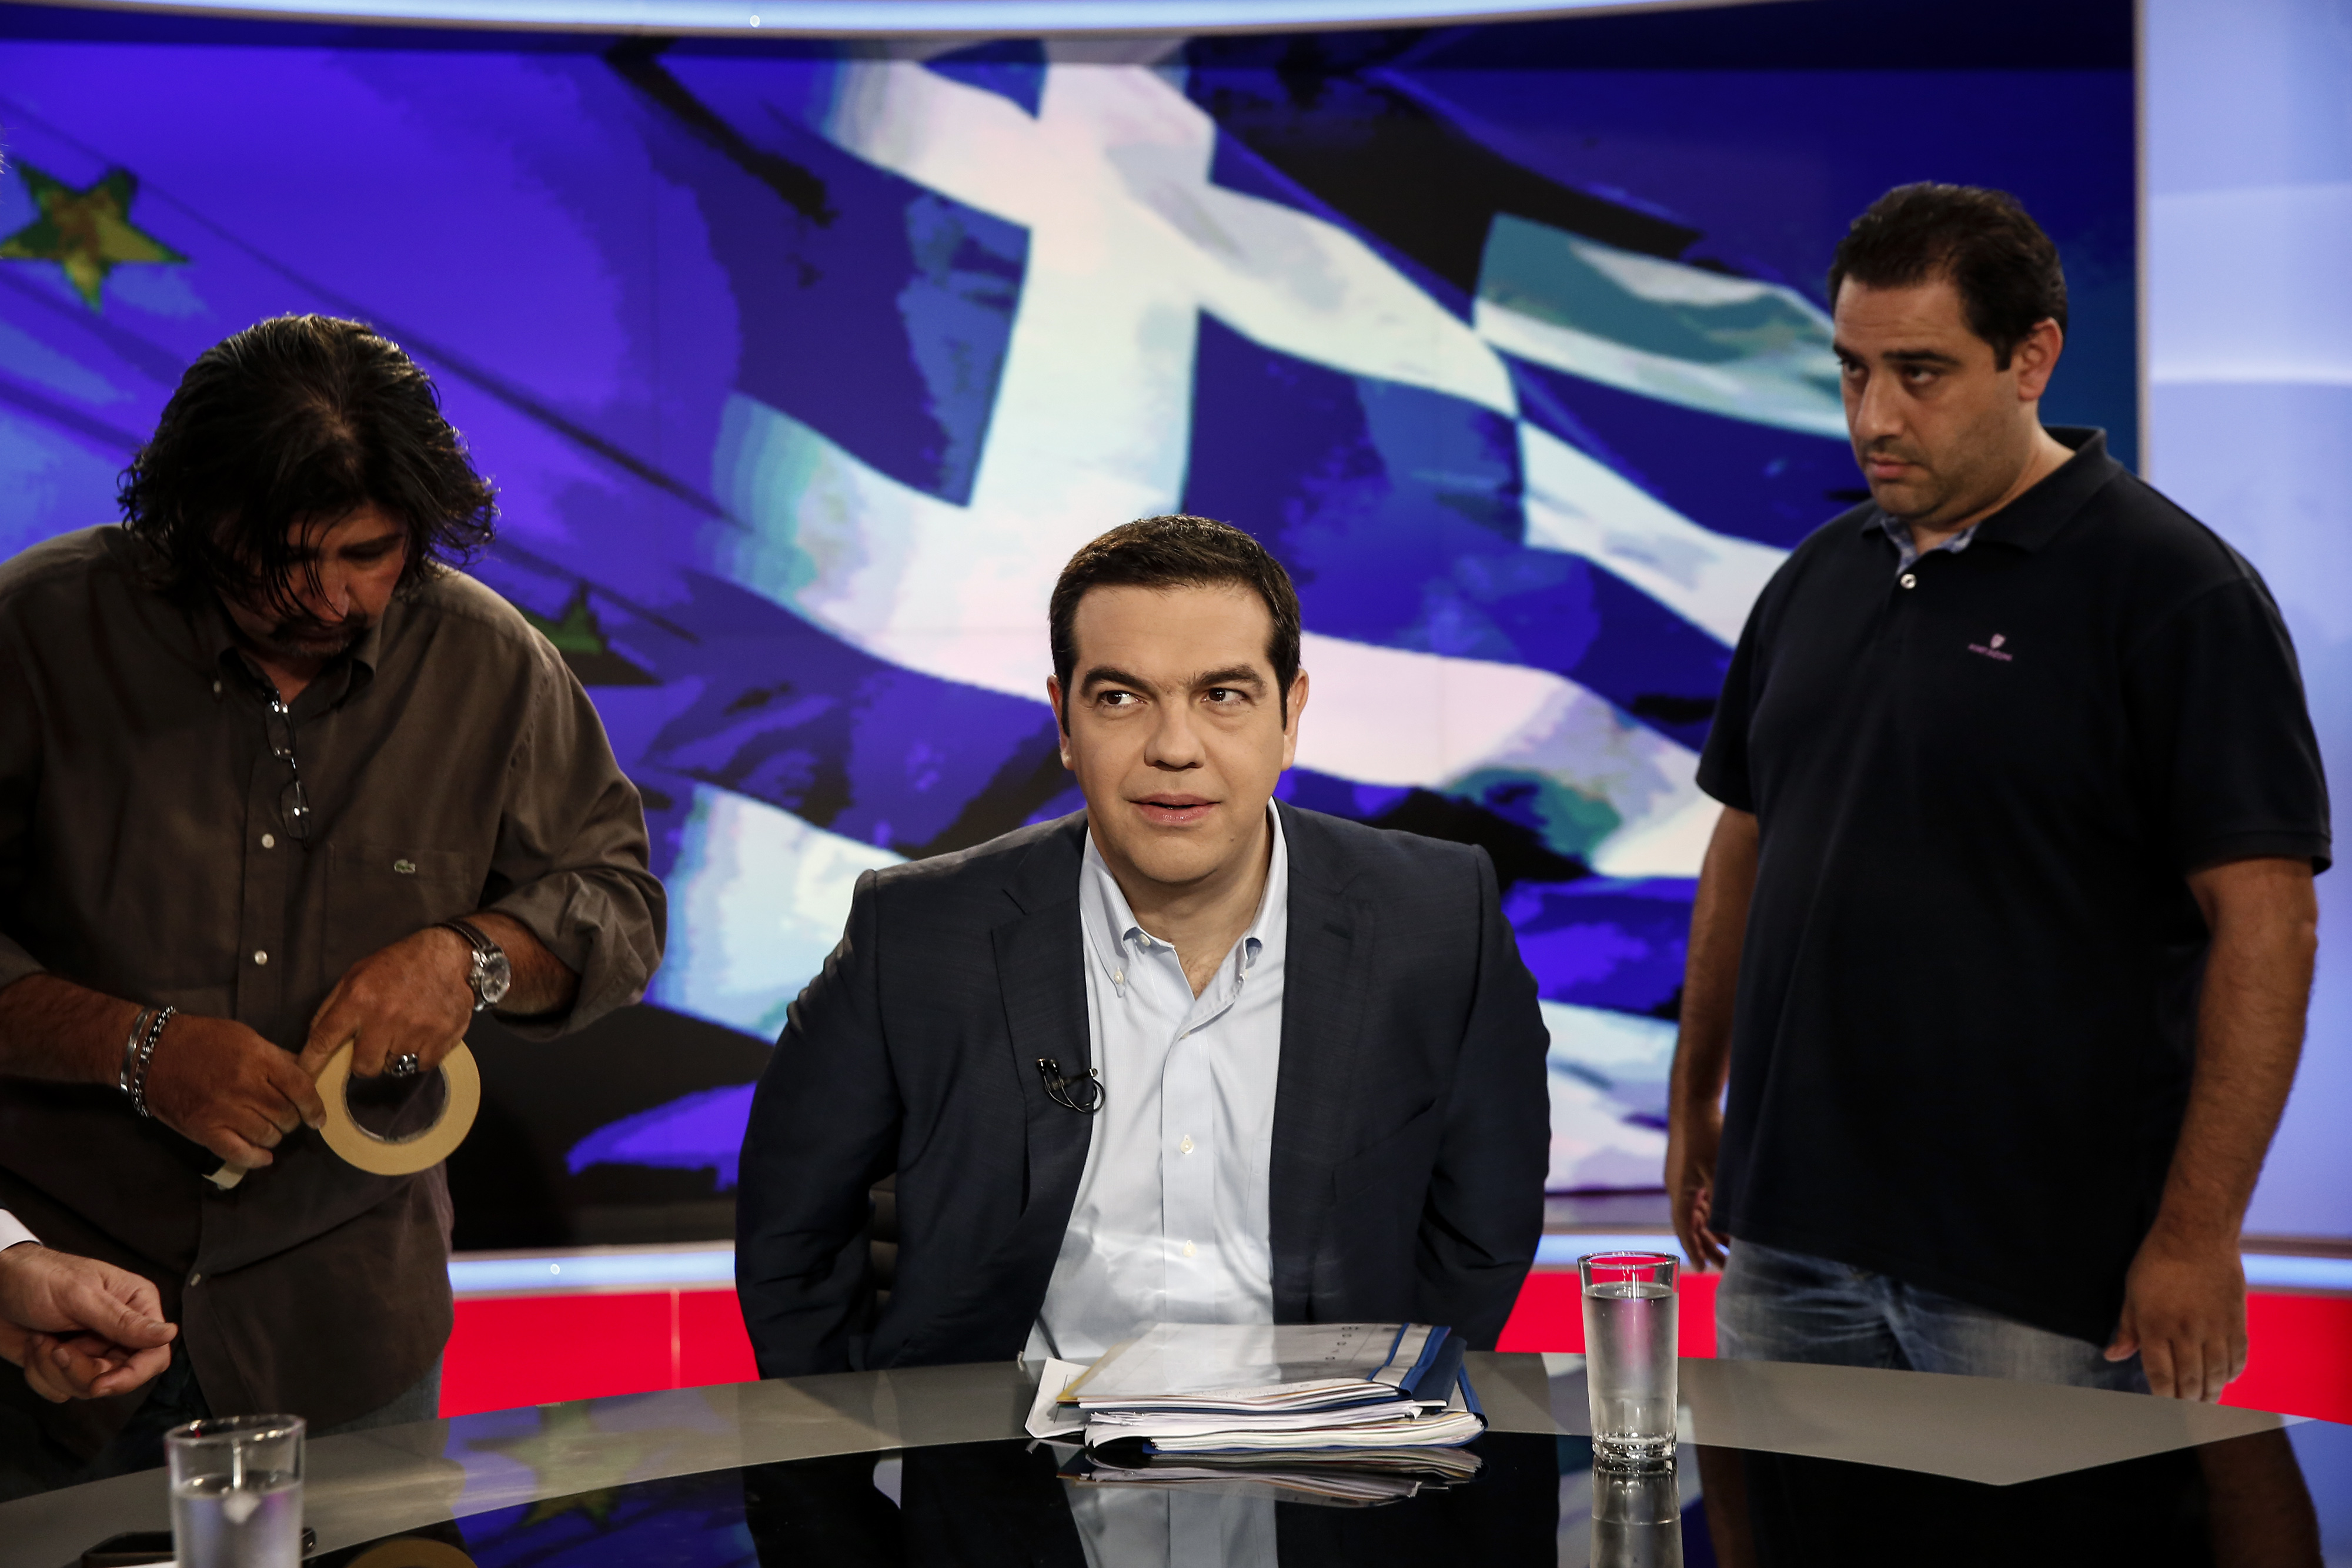 Greek Prime Minister Alexis Tsipras preparing for a TV interview late Monday, in which he promised Greeks that the Eurozone wouldn't dare expel their country from the Eurozone.